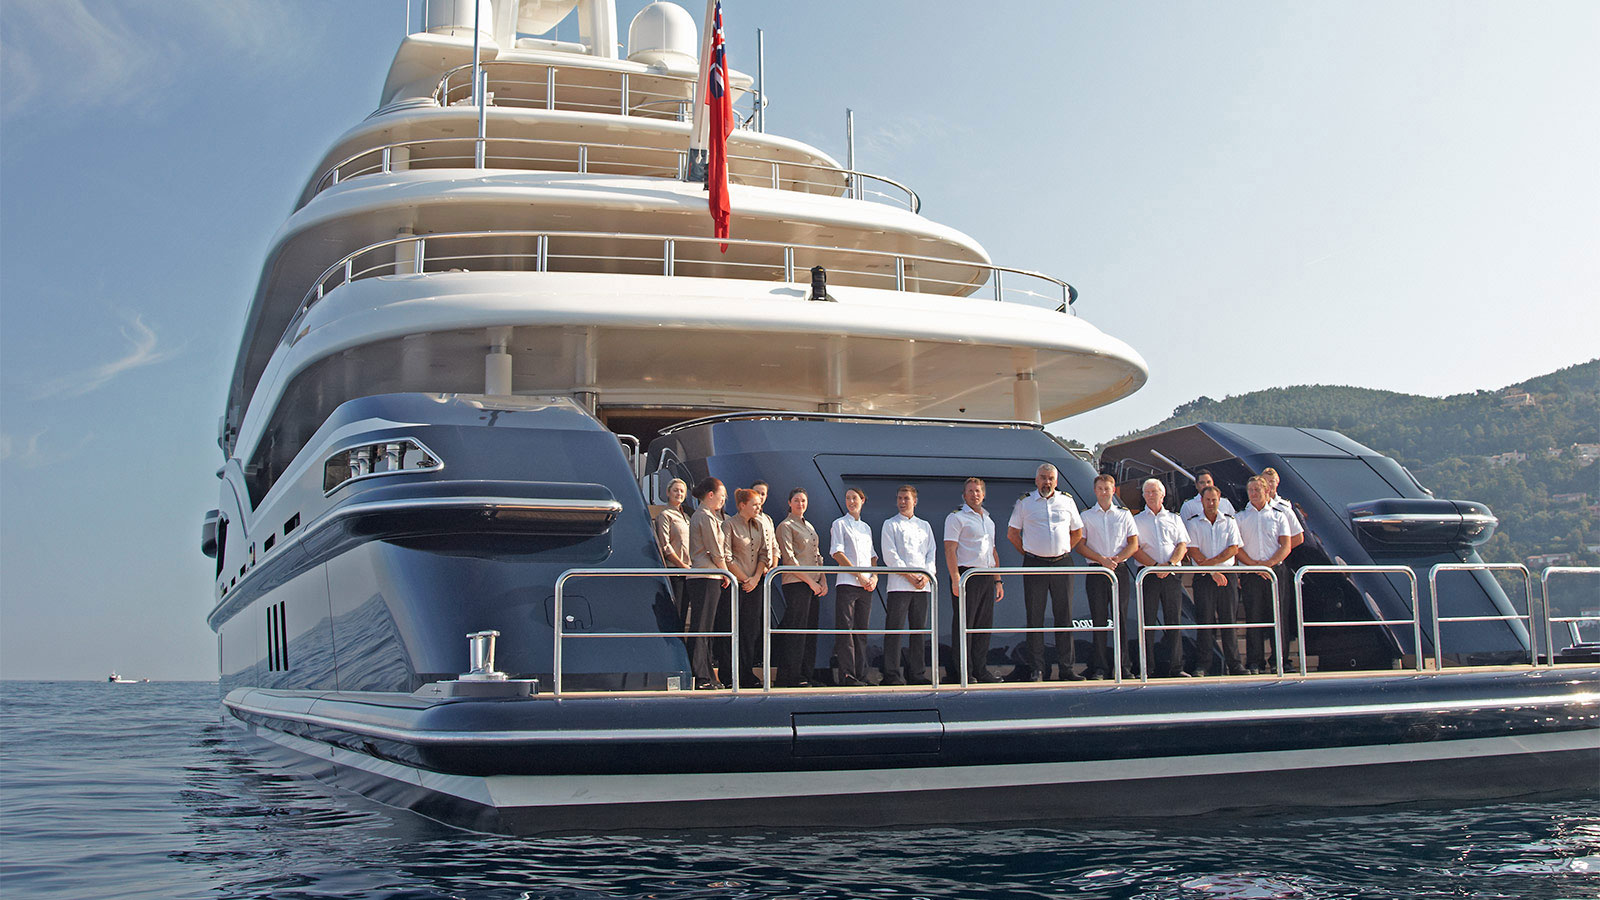 The numbers in yacht management how much costs a super or for Party boat fishing near me